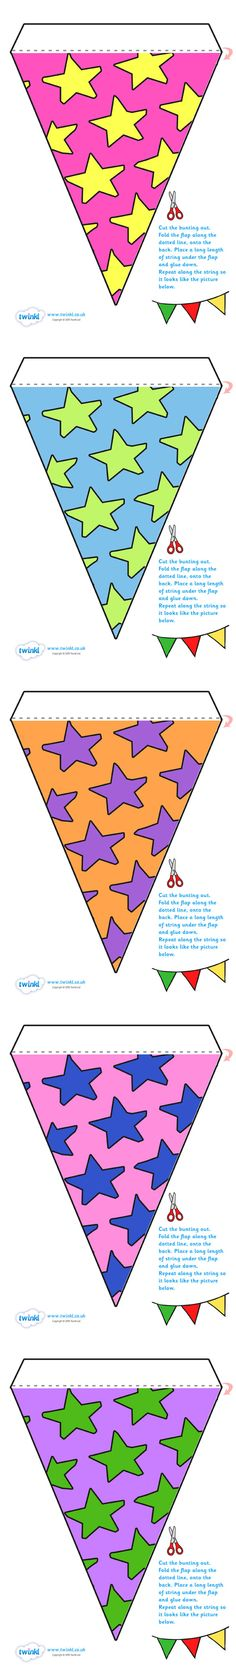 Twinkl Resources >> Display Bunting Stars >> Thousands of printable primary teaching resources for EYFS, KS1, KS2 and beyond! bunting, display bunting, classroom bunting, decorative bunting, royal wedding, classroom display, stars,